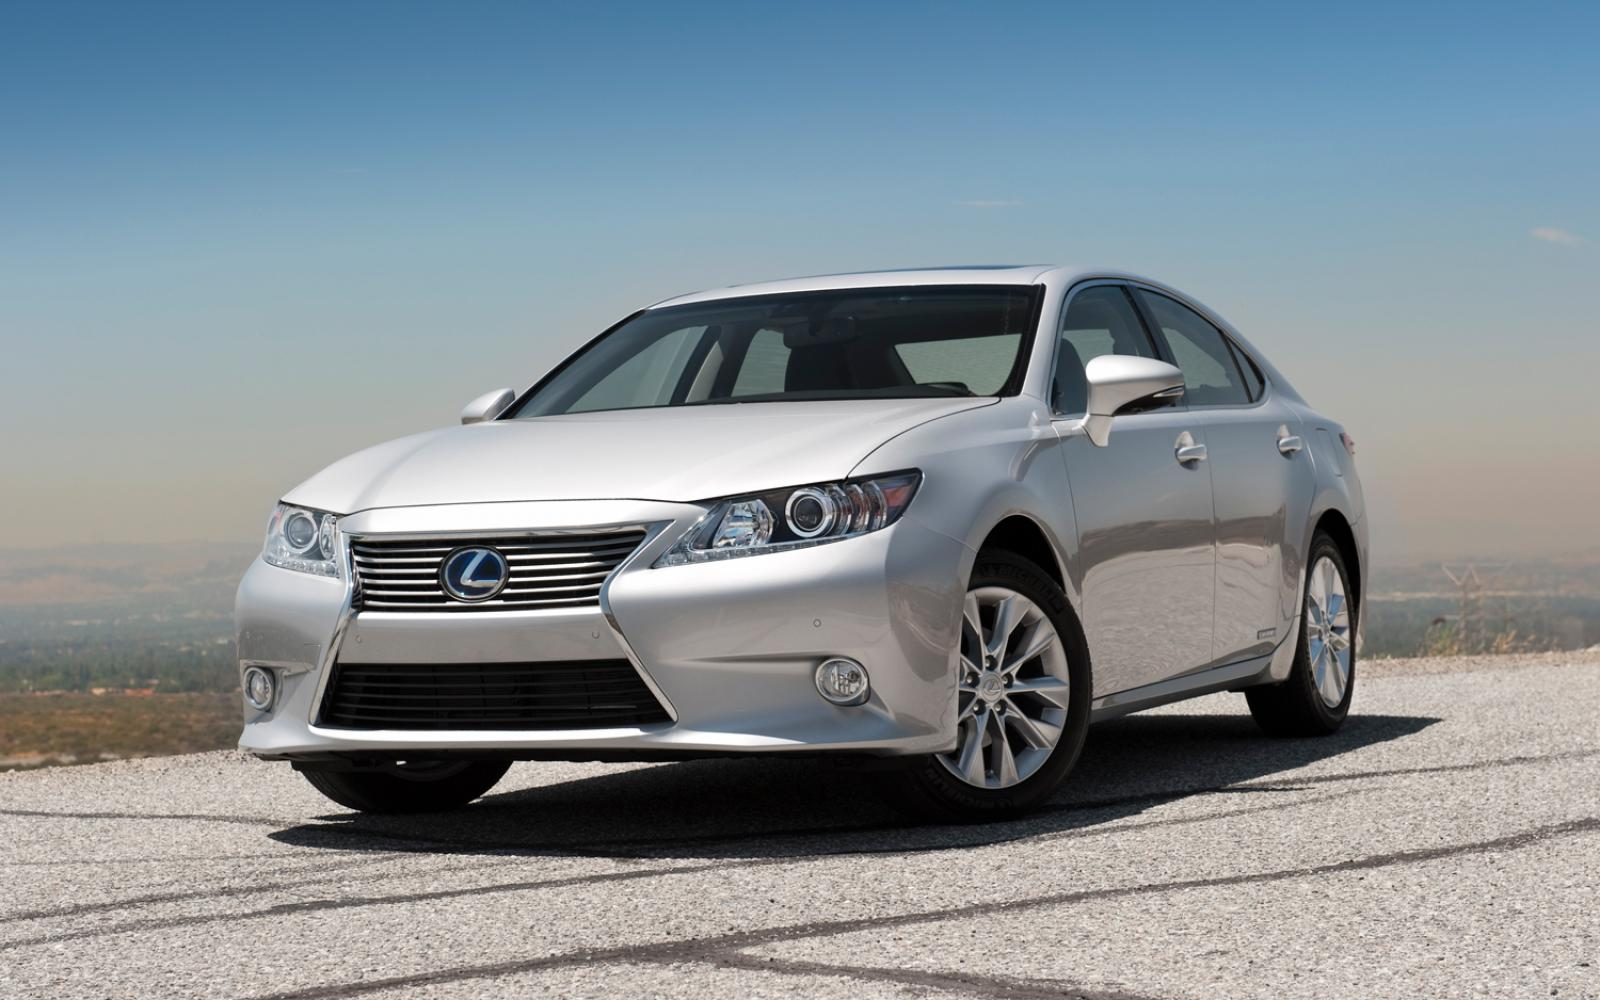 2015 lexus es 300h information and photos zombiedrive. Black Bedroom Furniture Sets. Home Design Ideas